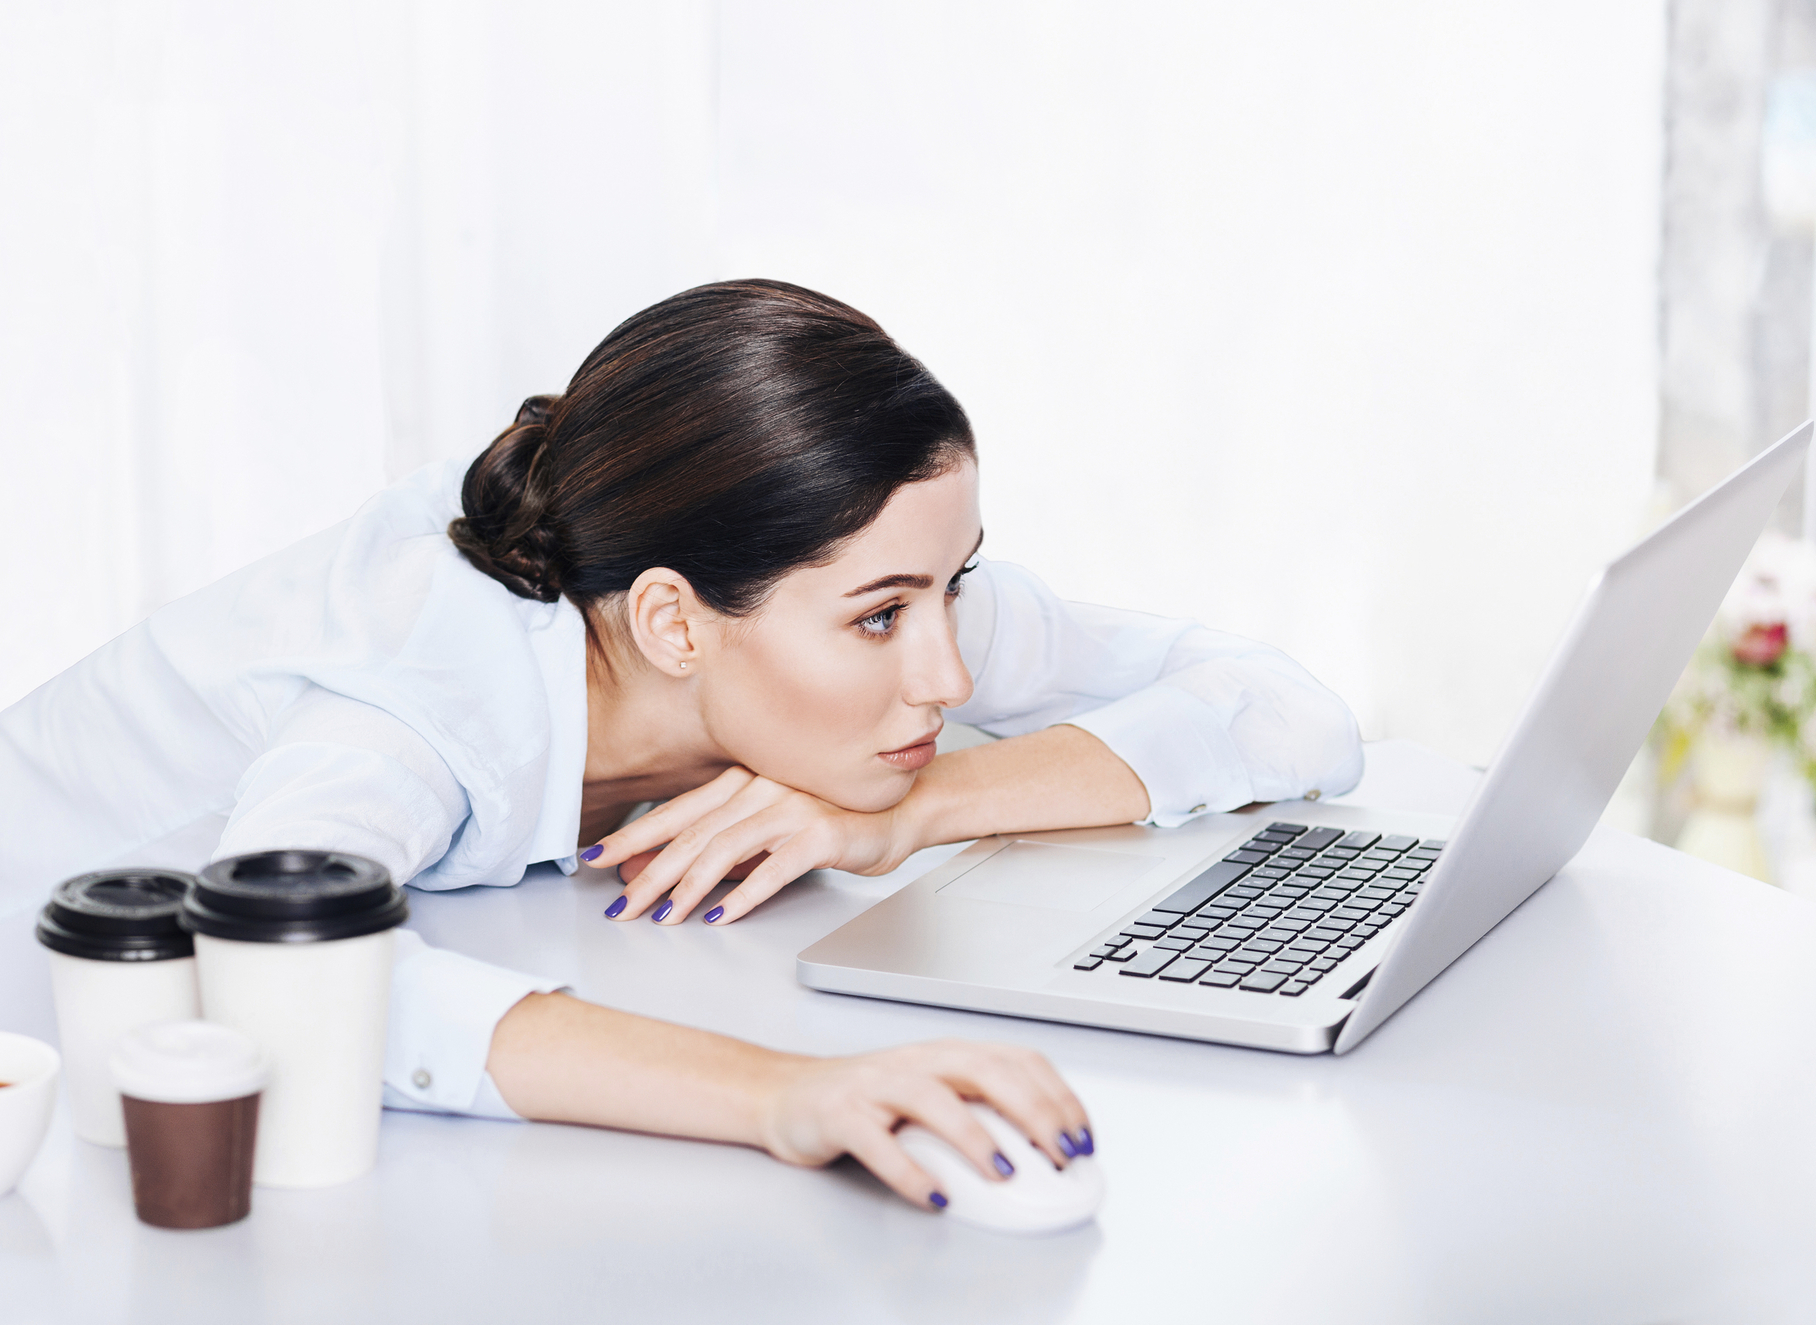 Long working hours killing 745,000 people a year - WHO